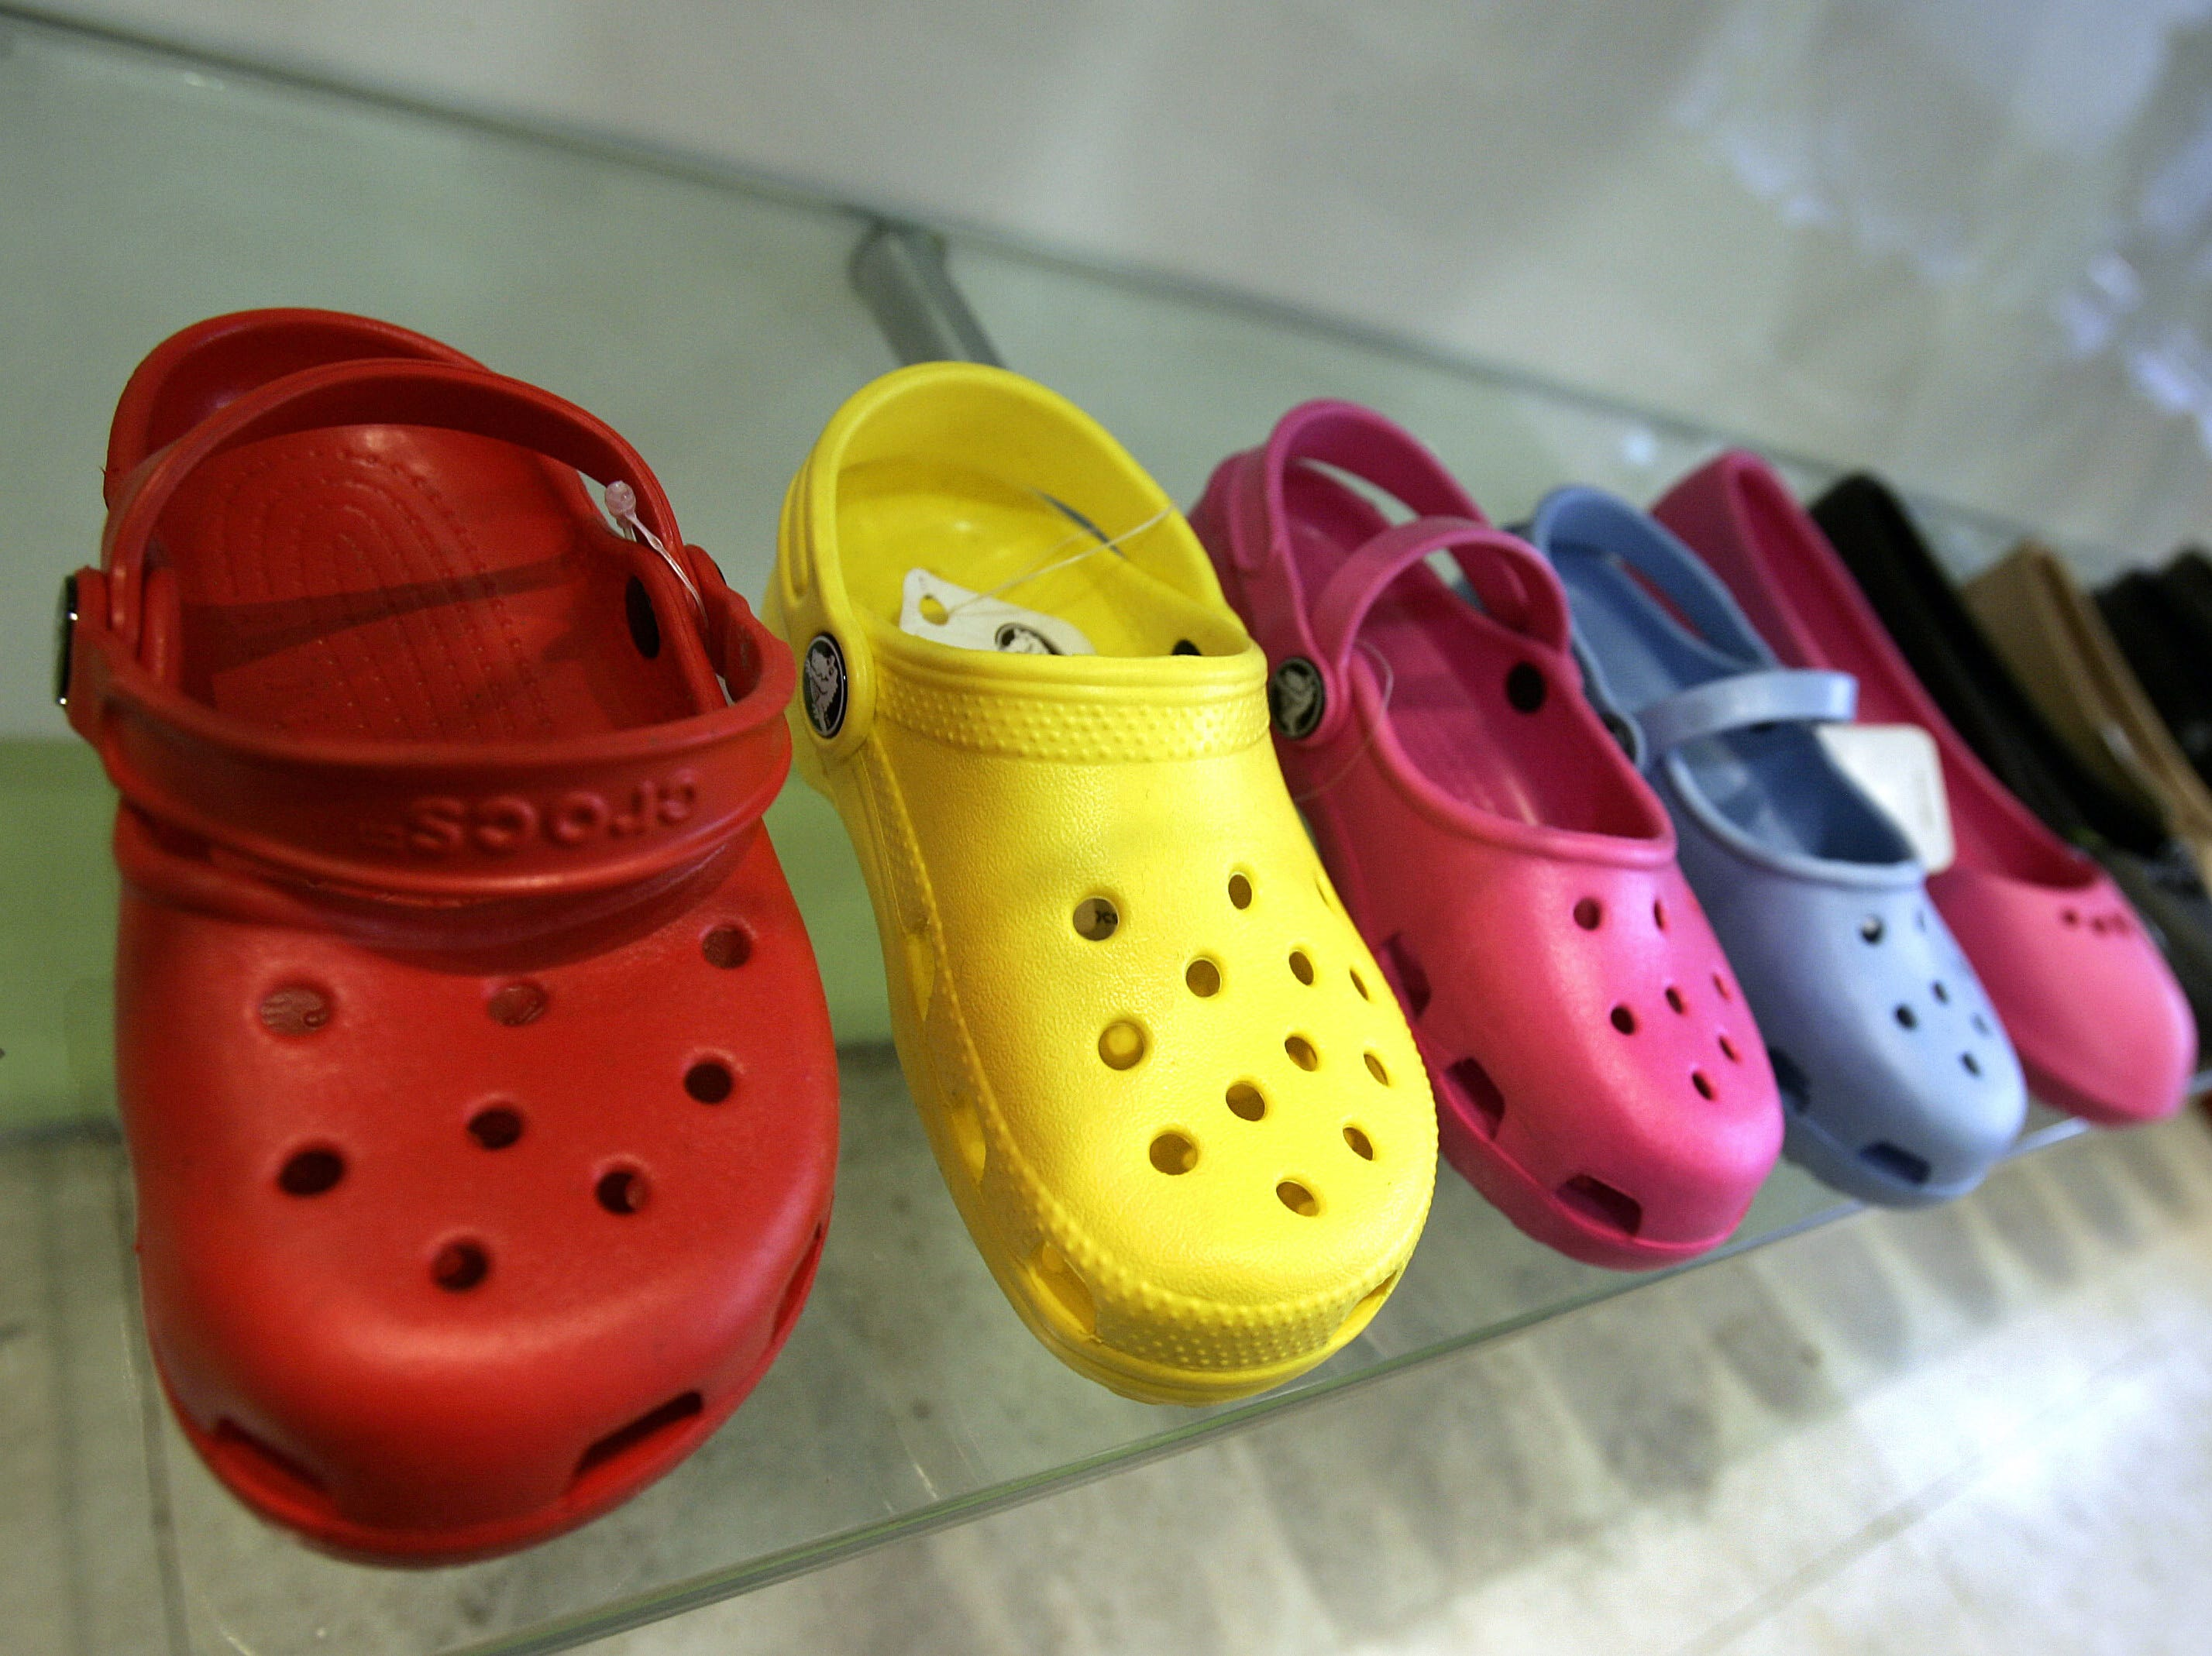 After Vans Challenge, Crocs Challenge has people throwing more shoes on Twitter